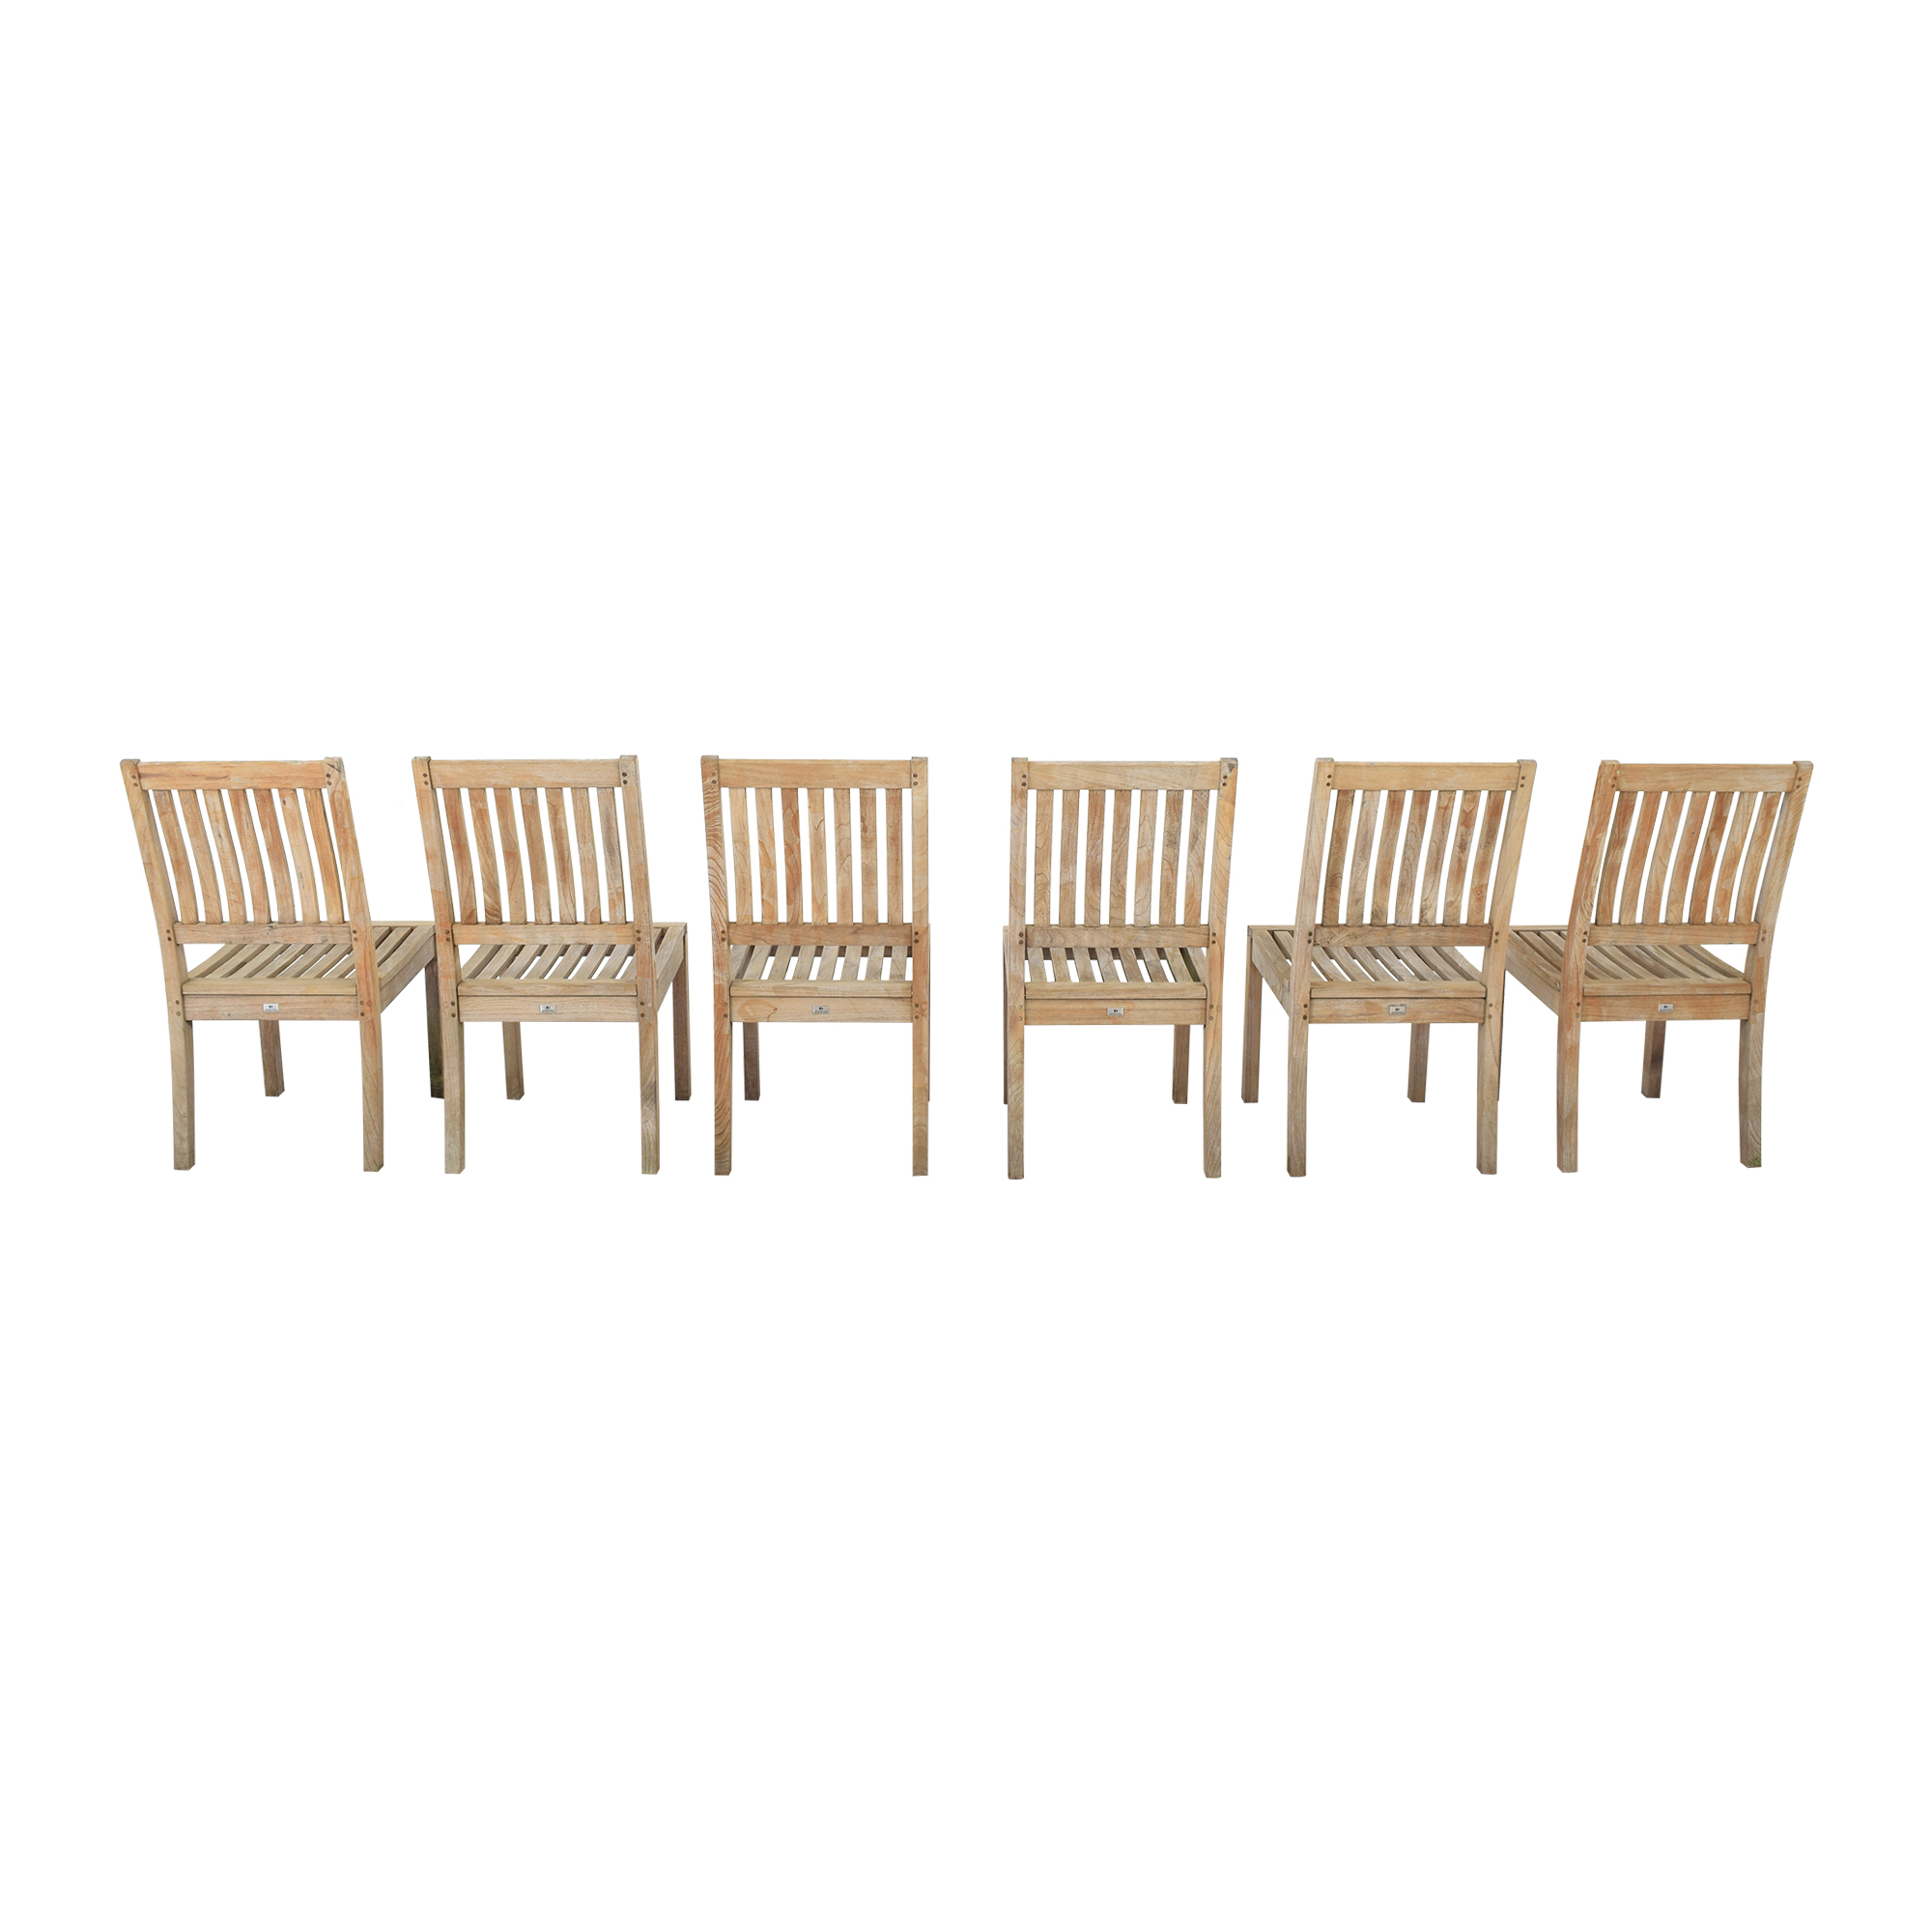 shop Gloster Gloster Wooden Dining Chairs online